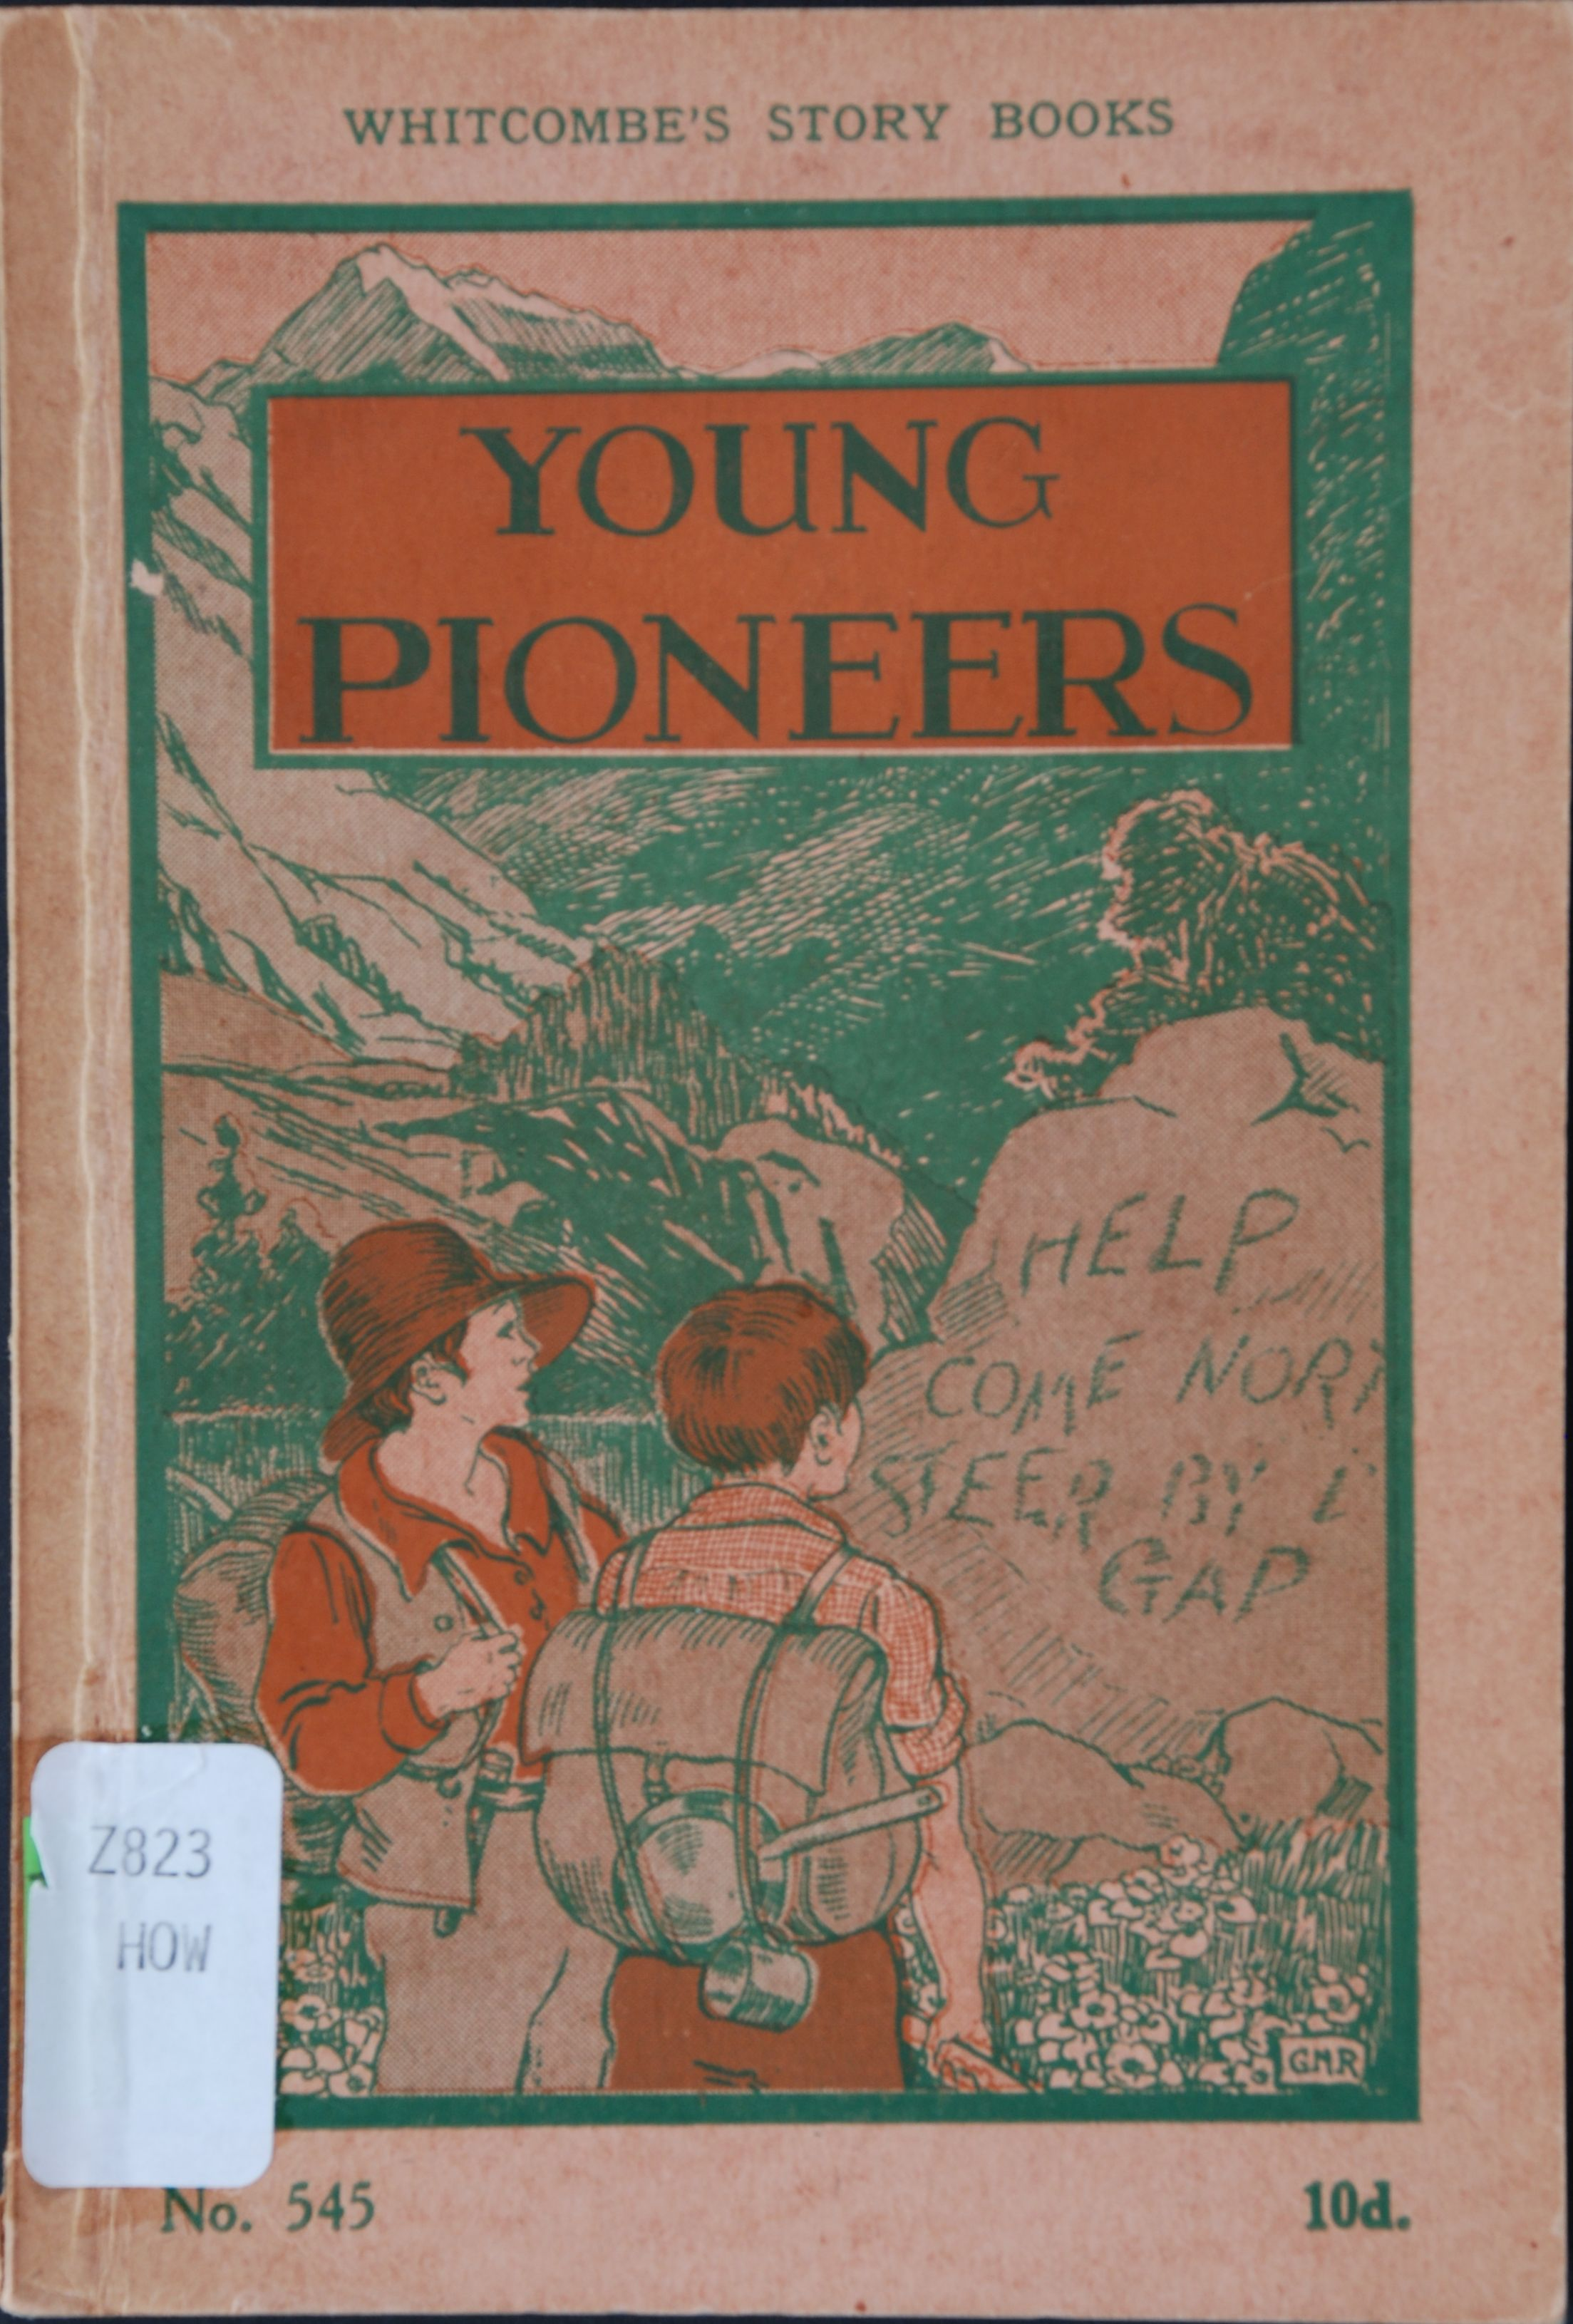 Edith Howes. Young pioneers. Auckland [N.Z.]: Whitcombe and Tombs [1934].